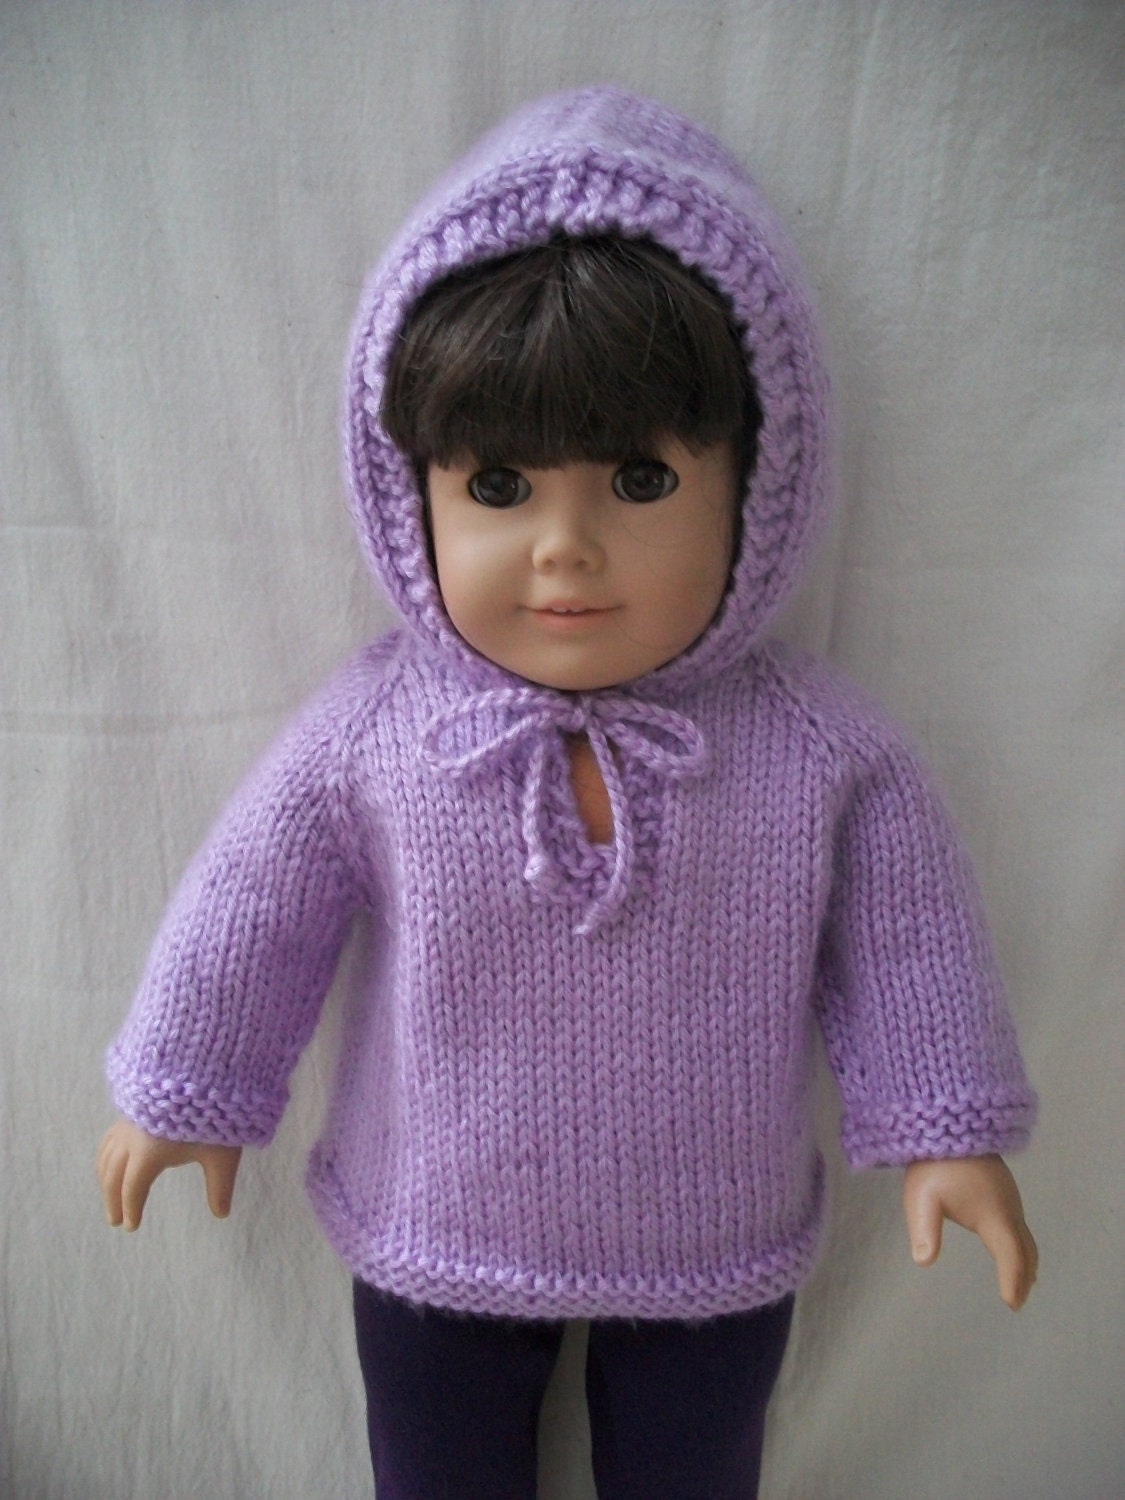 Knitting Patterns For Ag Dolls : PDF Knitting Pattern for American Girl or 18 Doll Top